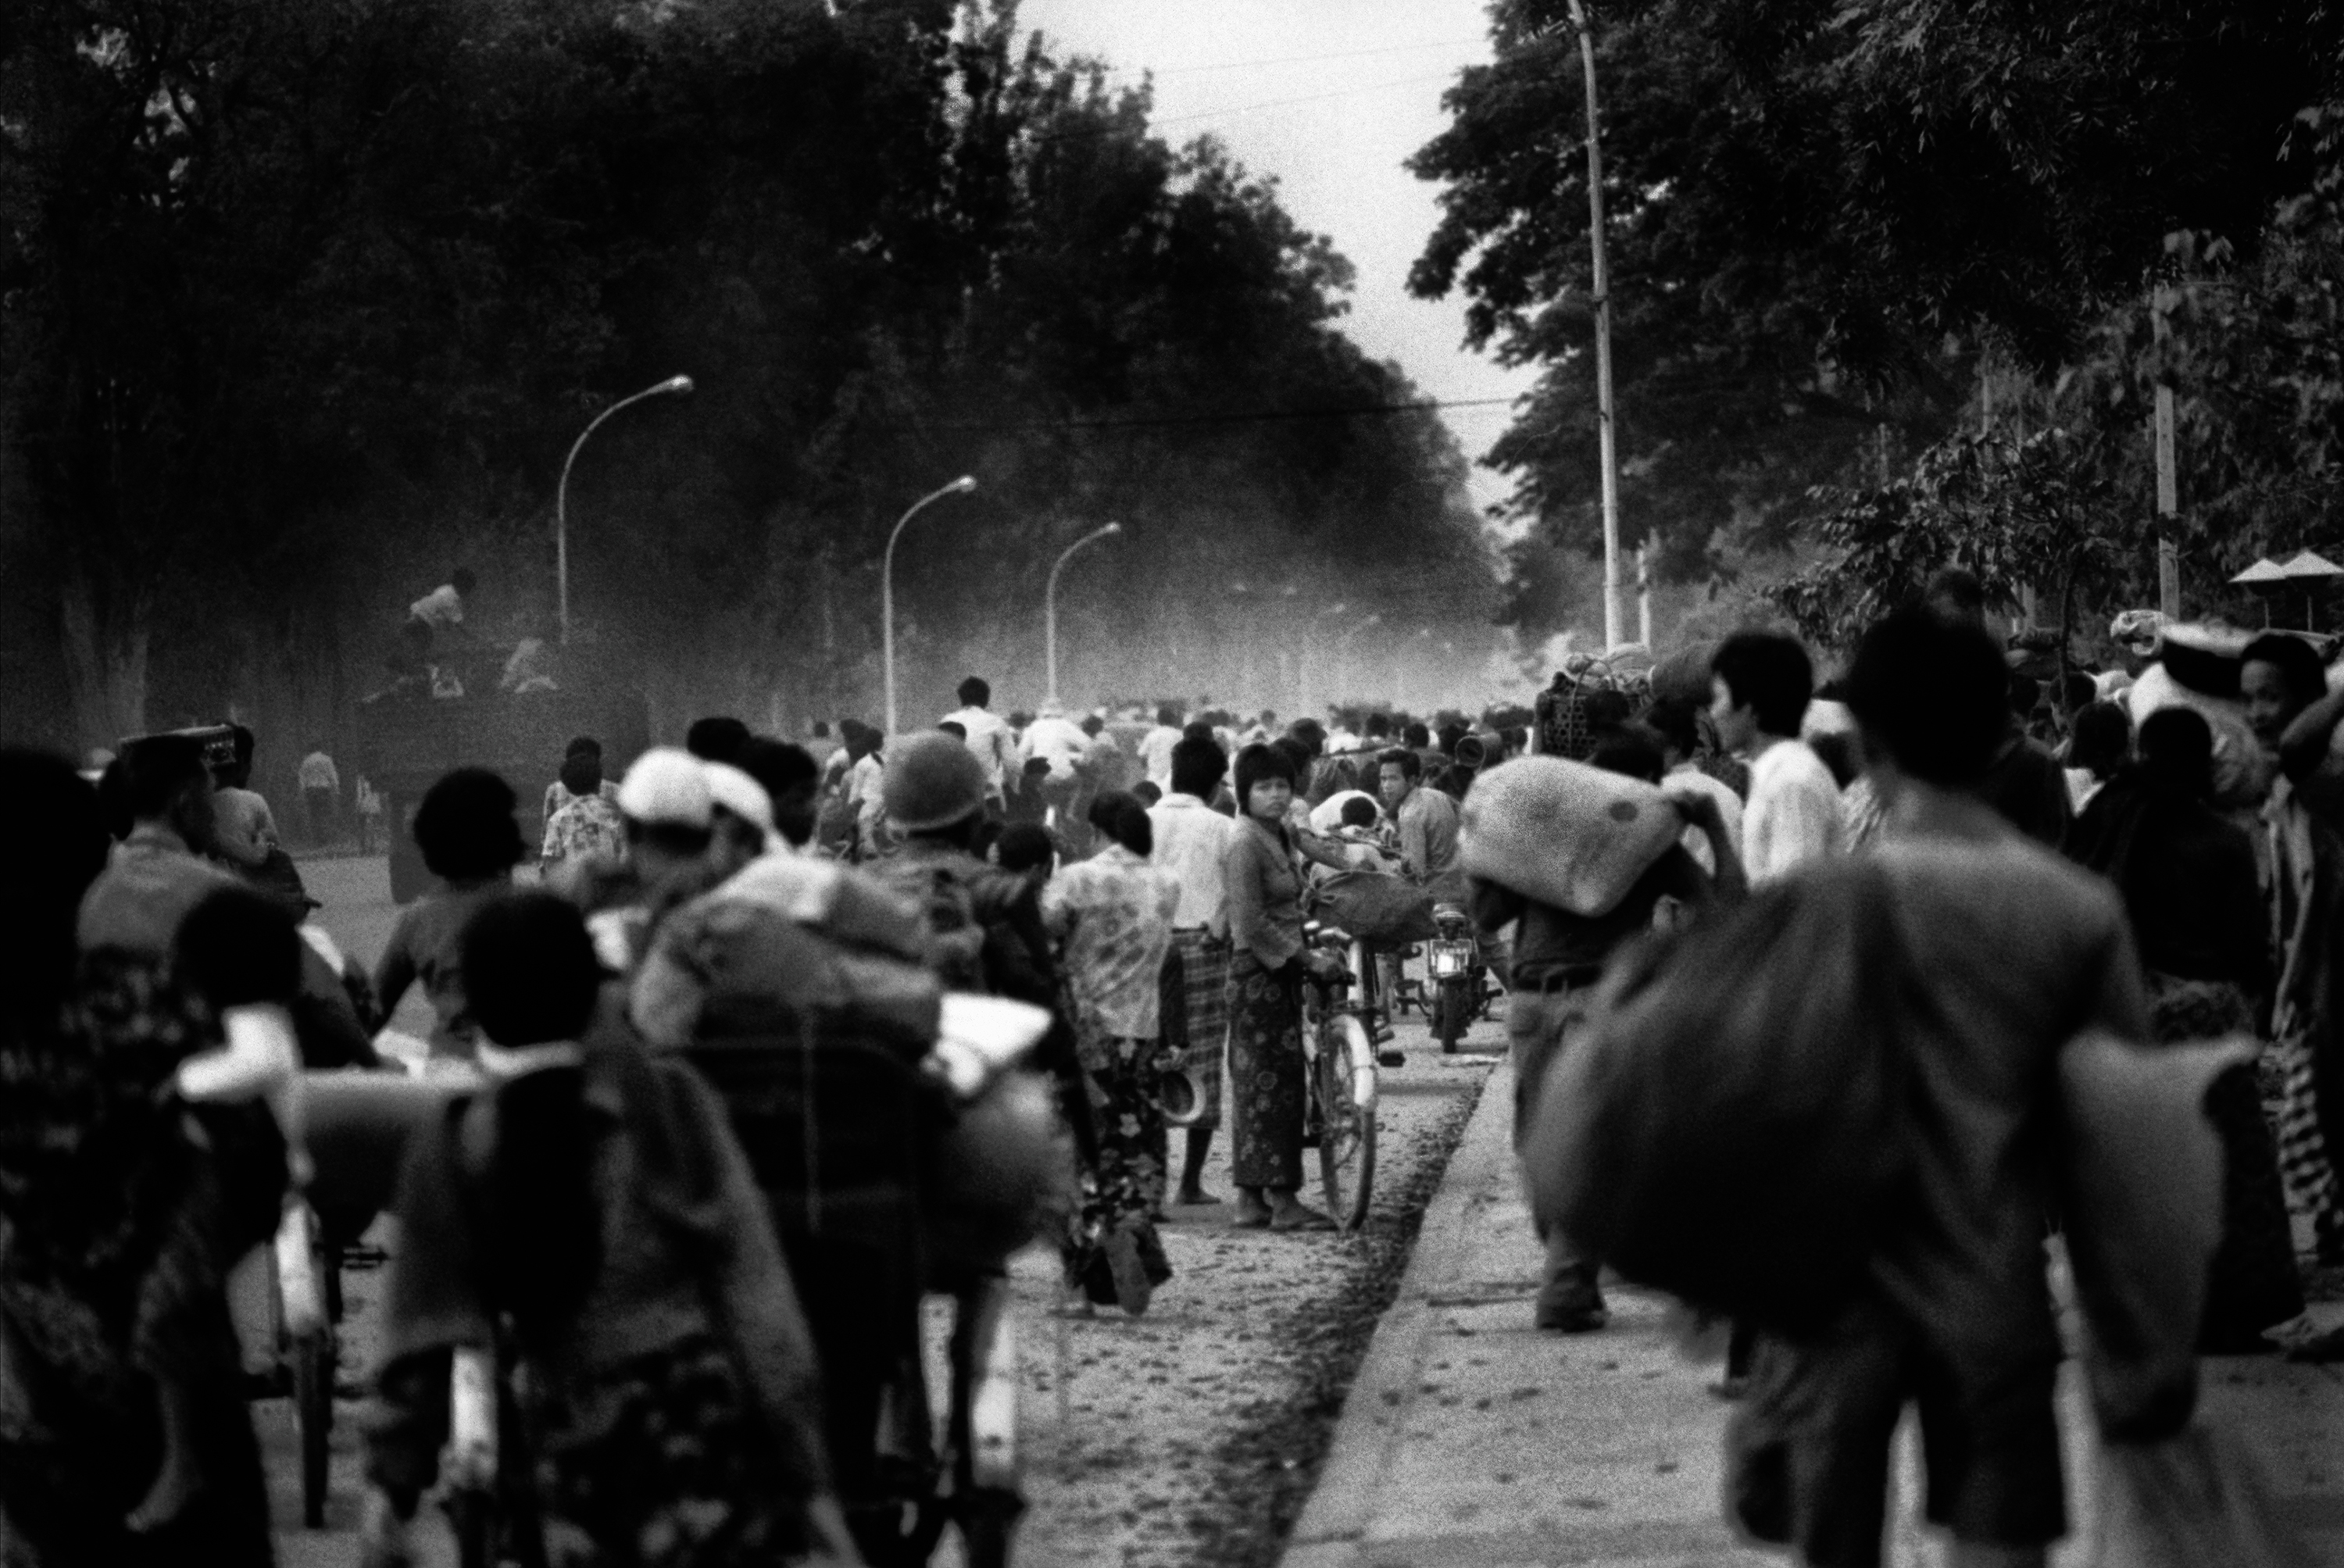 On the eve of the Fall of Phnom Penh to the Khmer Rouge on April 16, 1975 as night fell, thousands of people streamed towards the center of Phnom Penh on Monivong Boulevard.